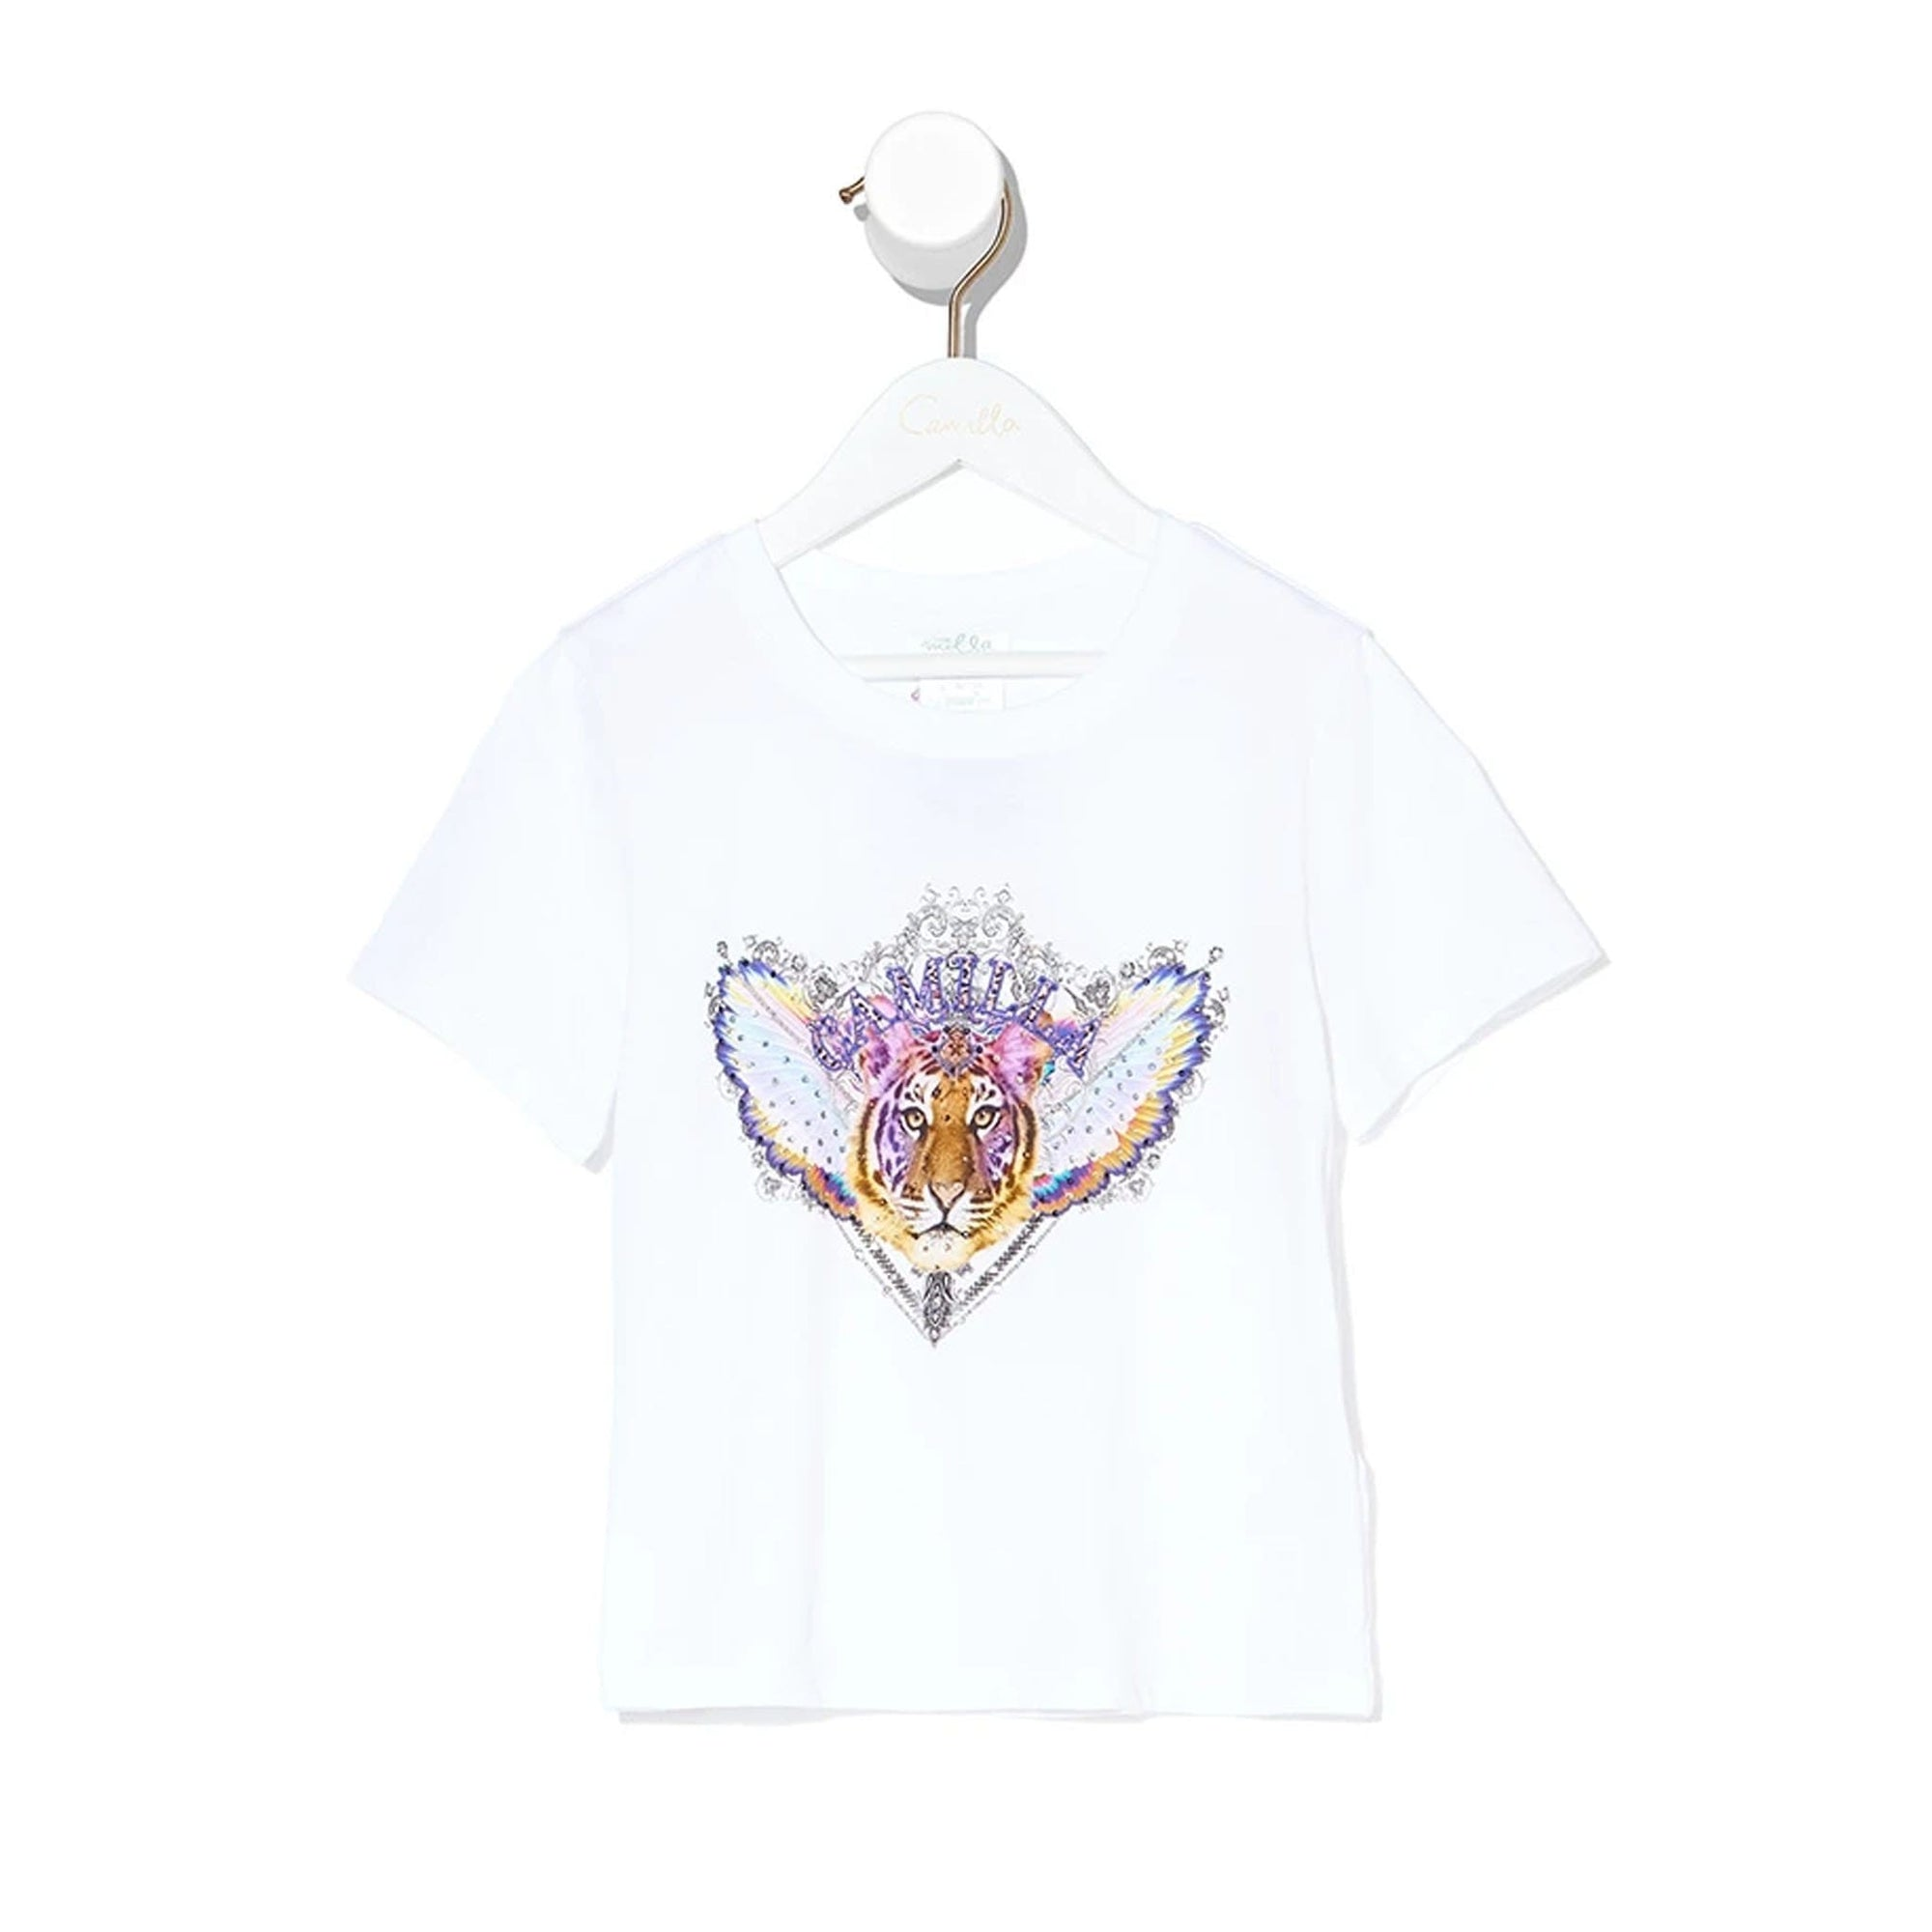 Camilla Love On the Wing Short Sleeve T-shirt